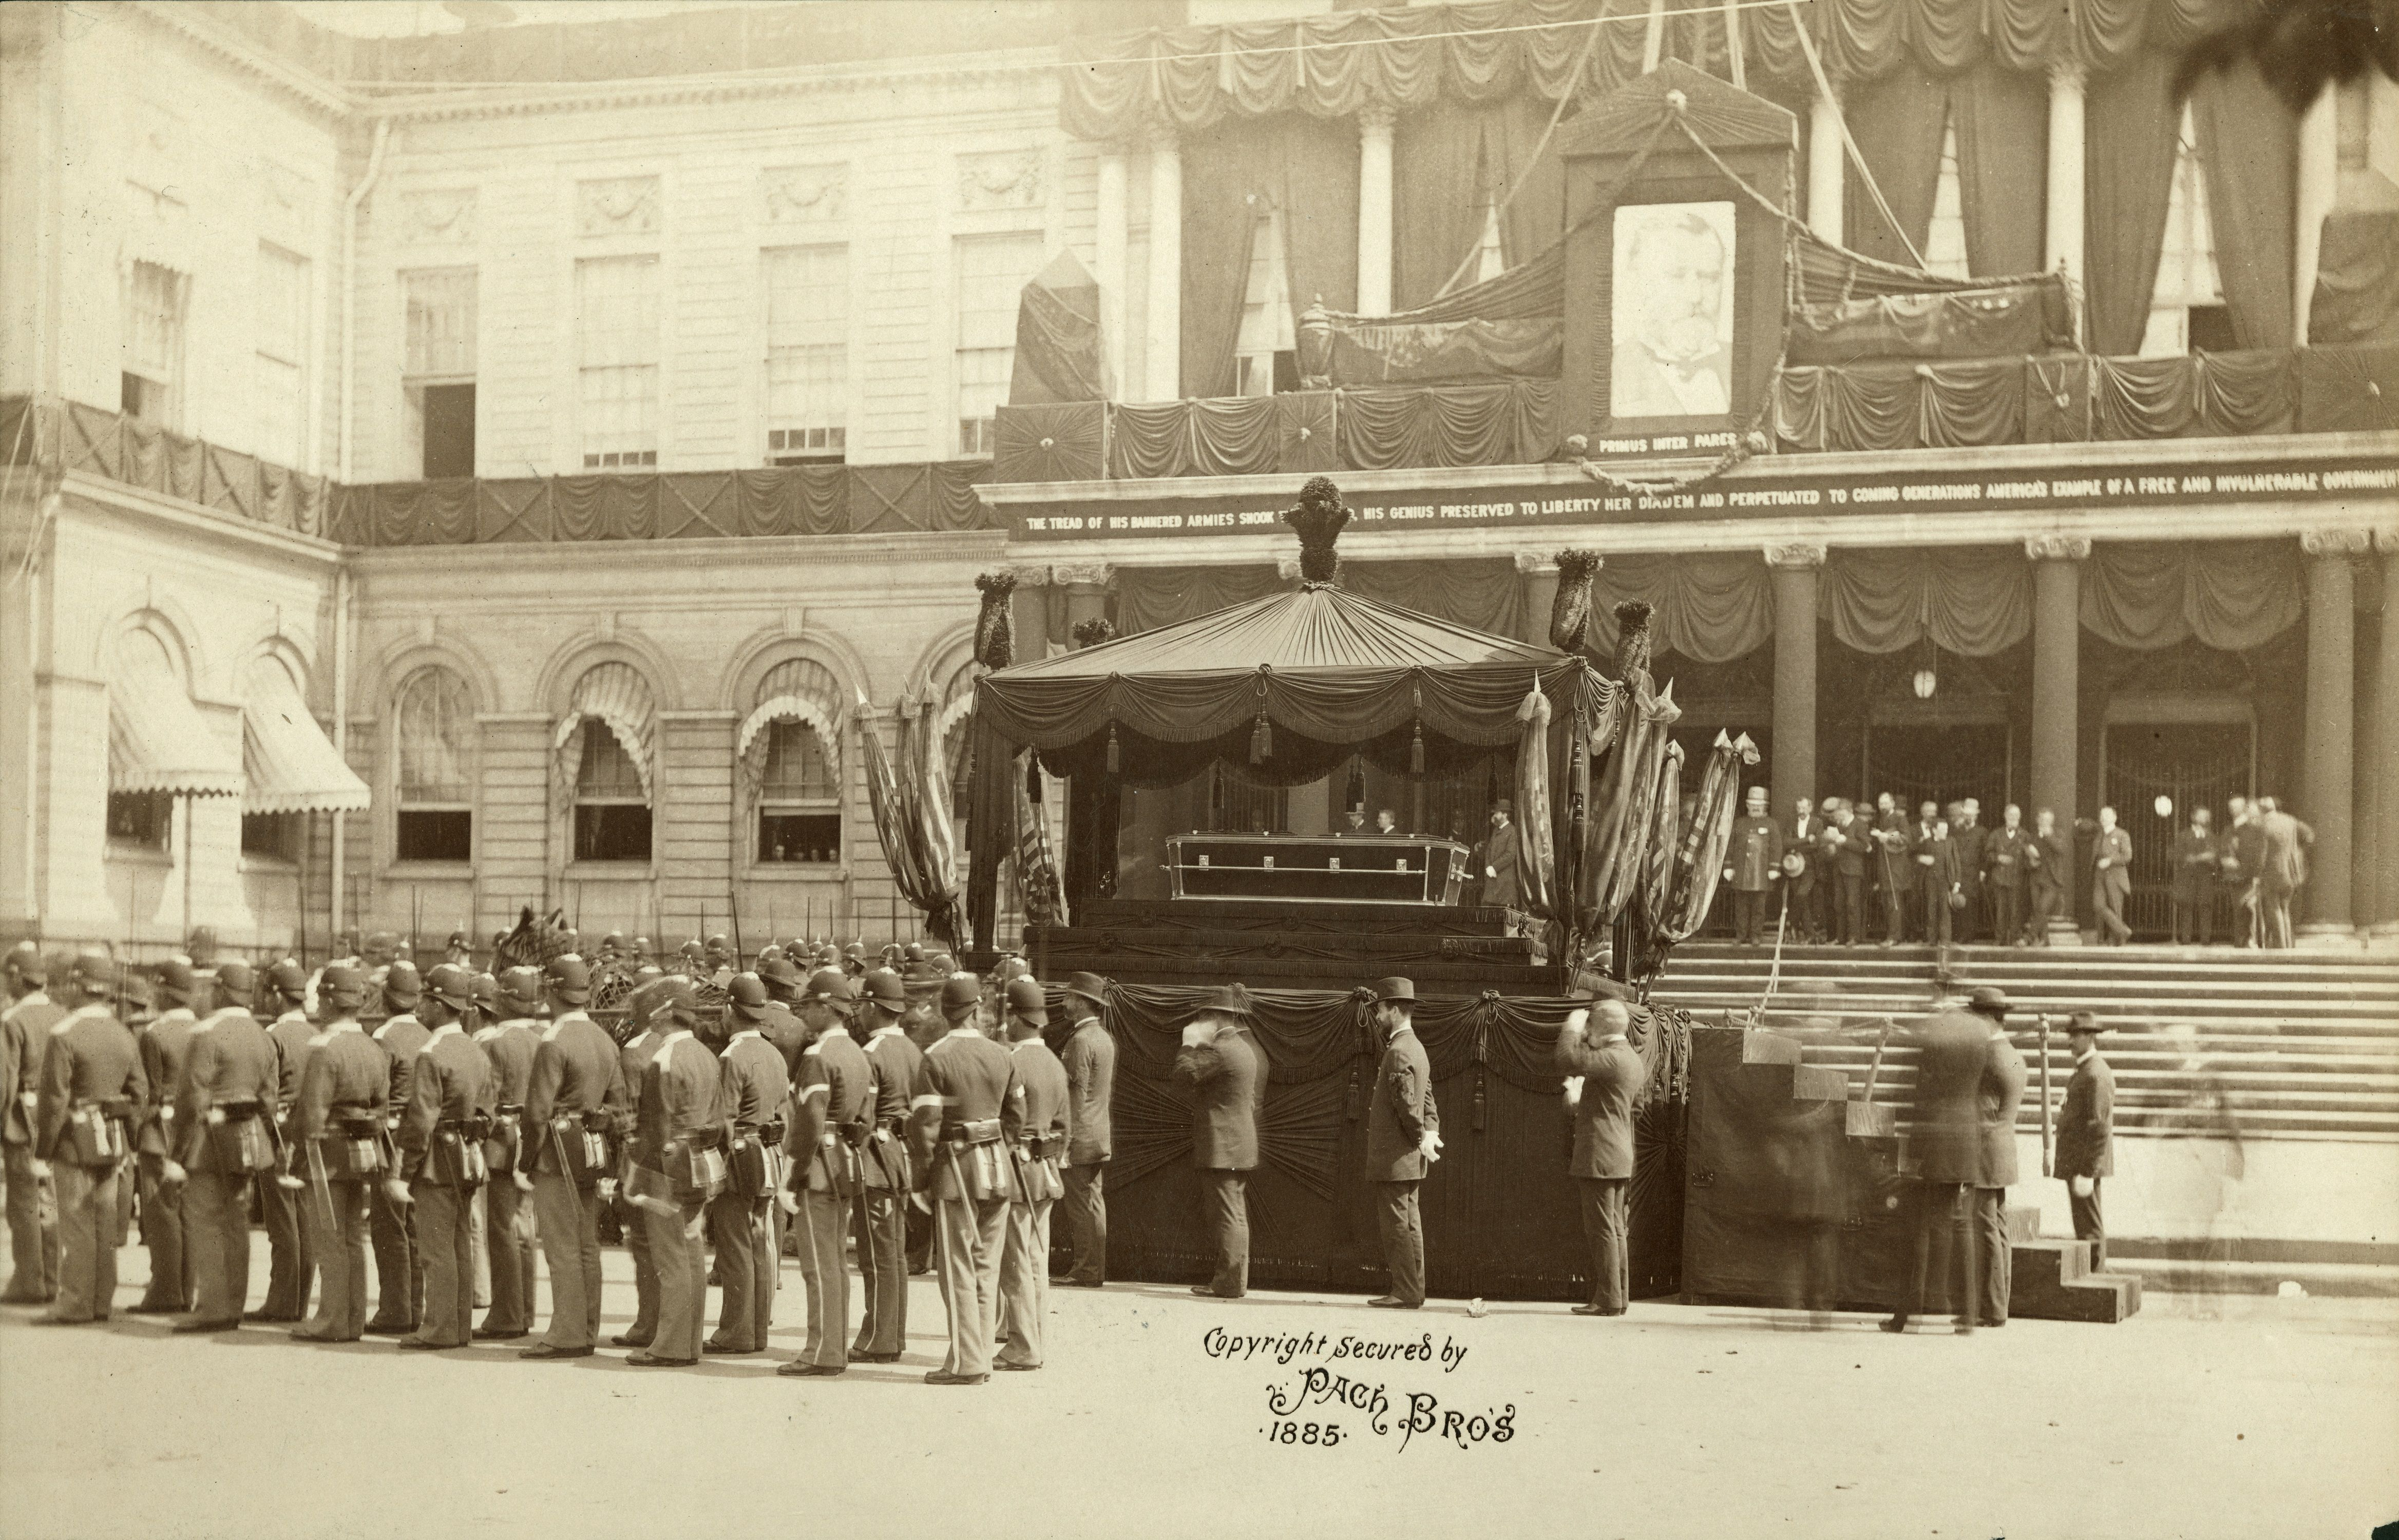 Photograph of President Grant's coffin outside New York's City Hall.